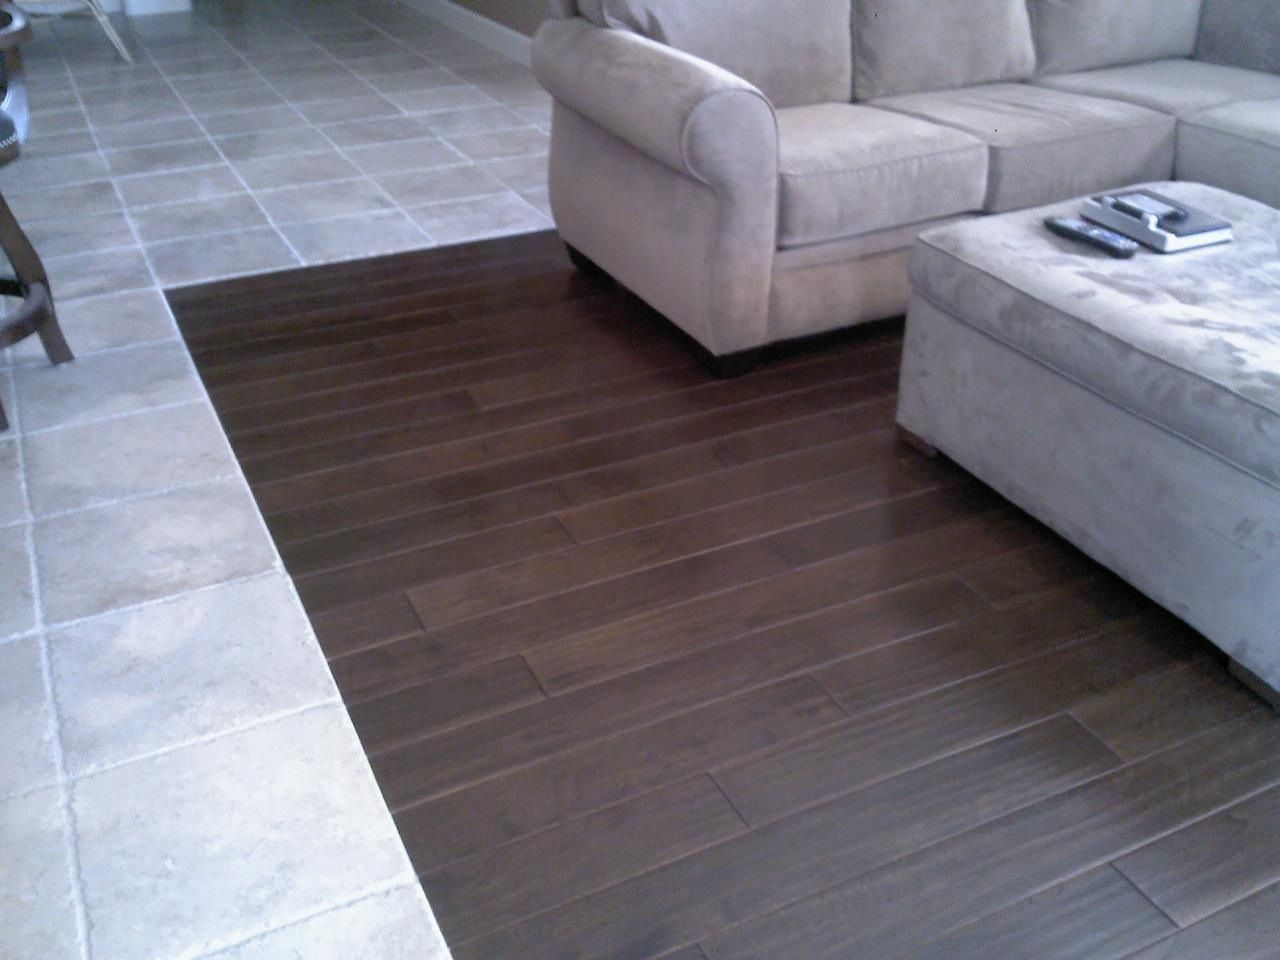 Wood Chevron Entryway Transitioning Into Tile Kitchen Floor